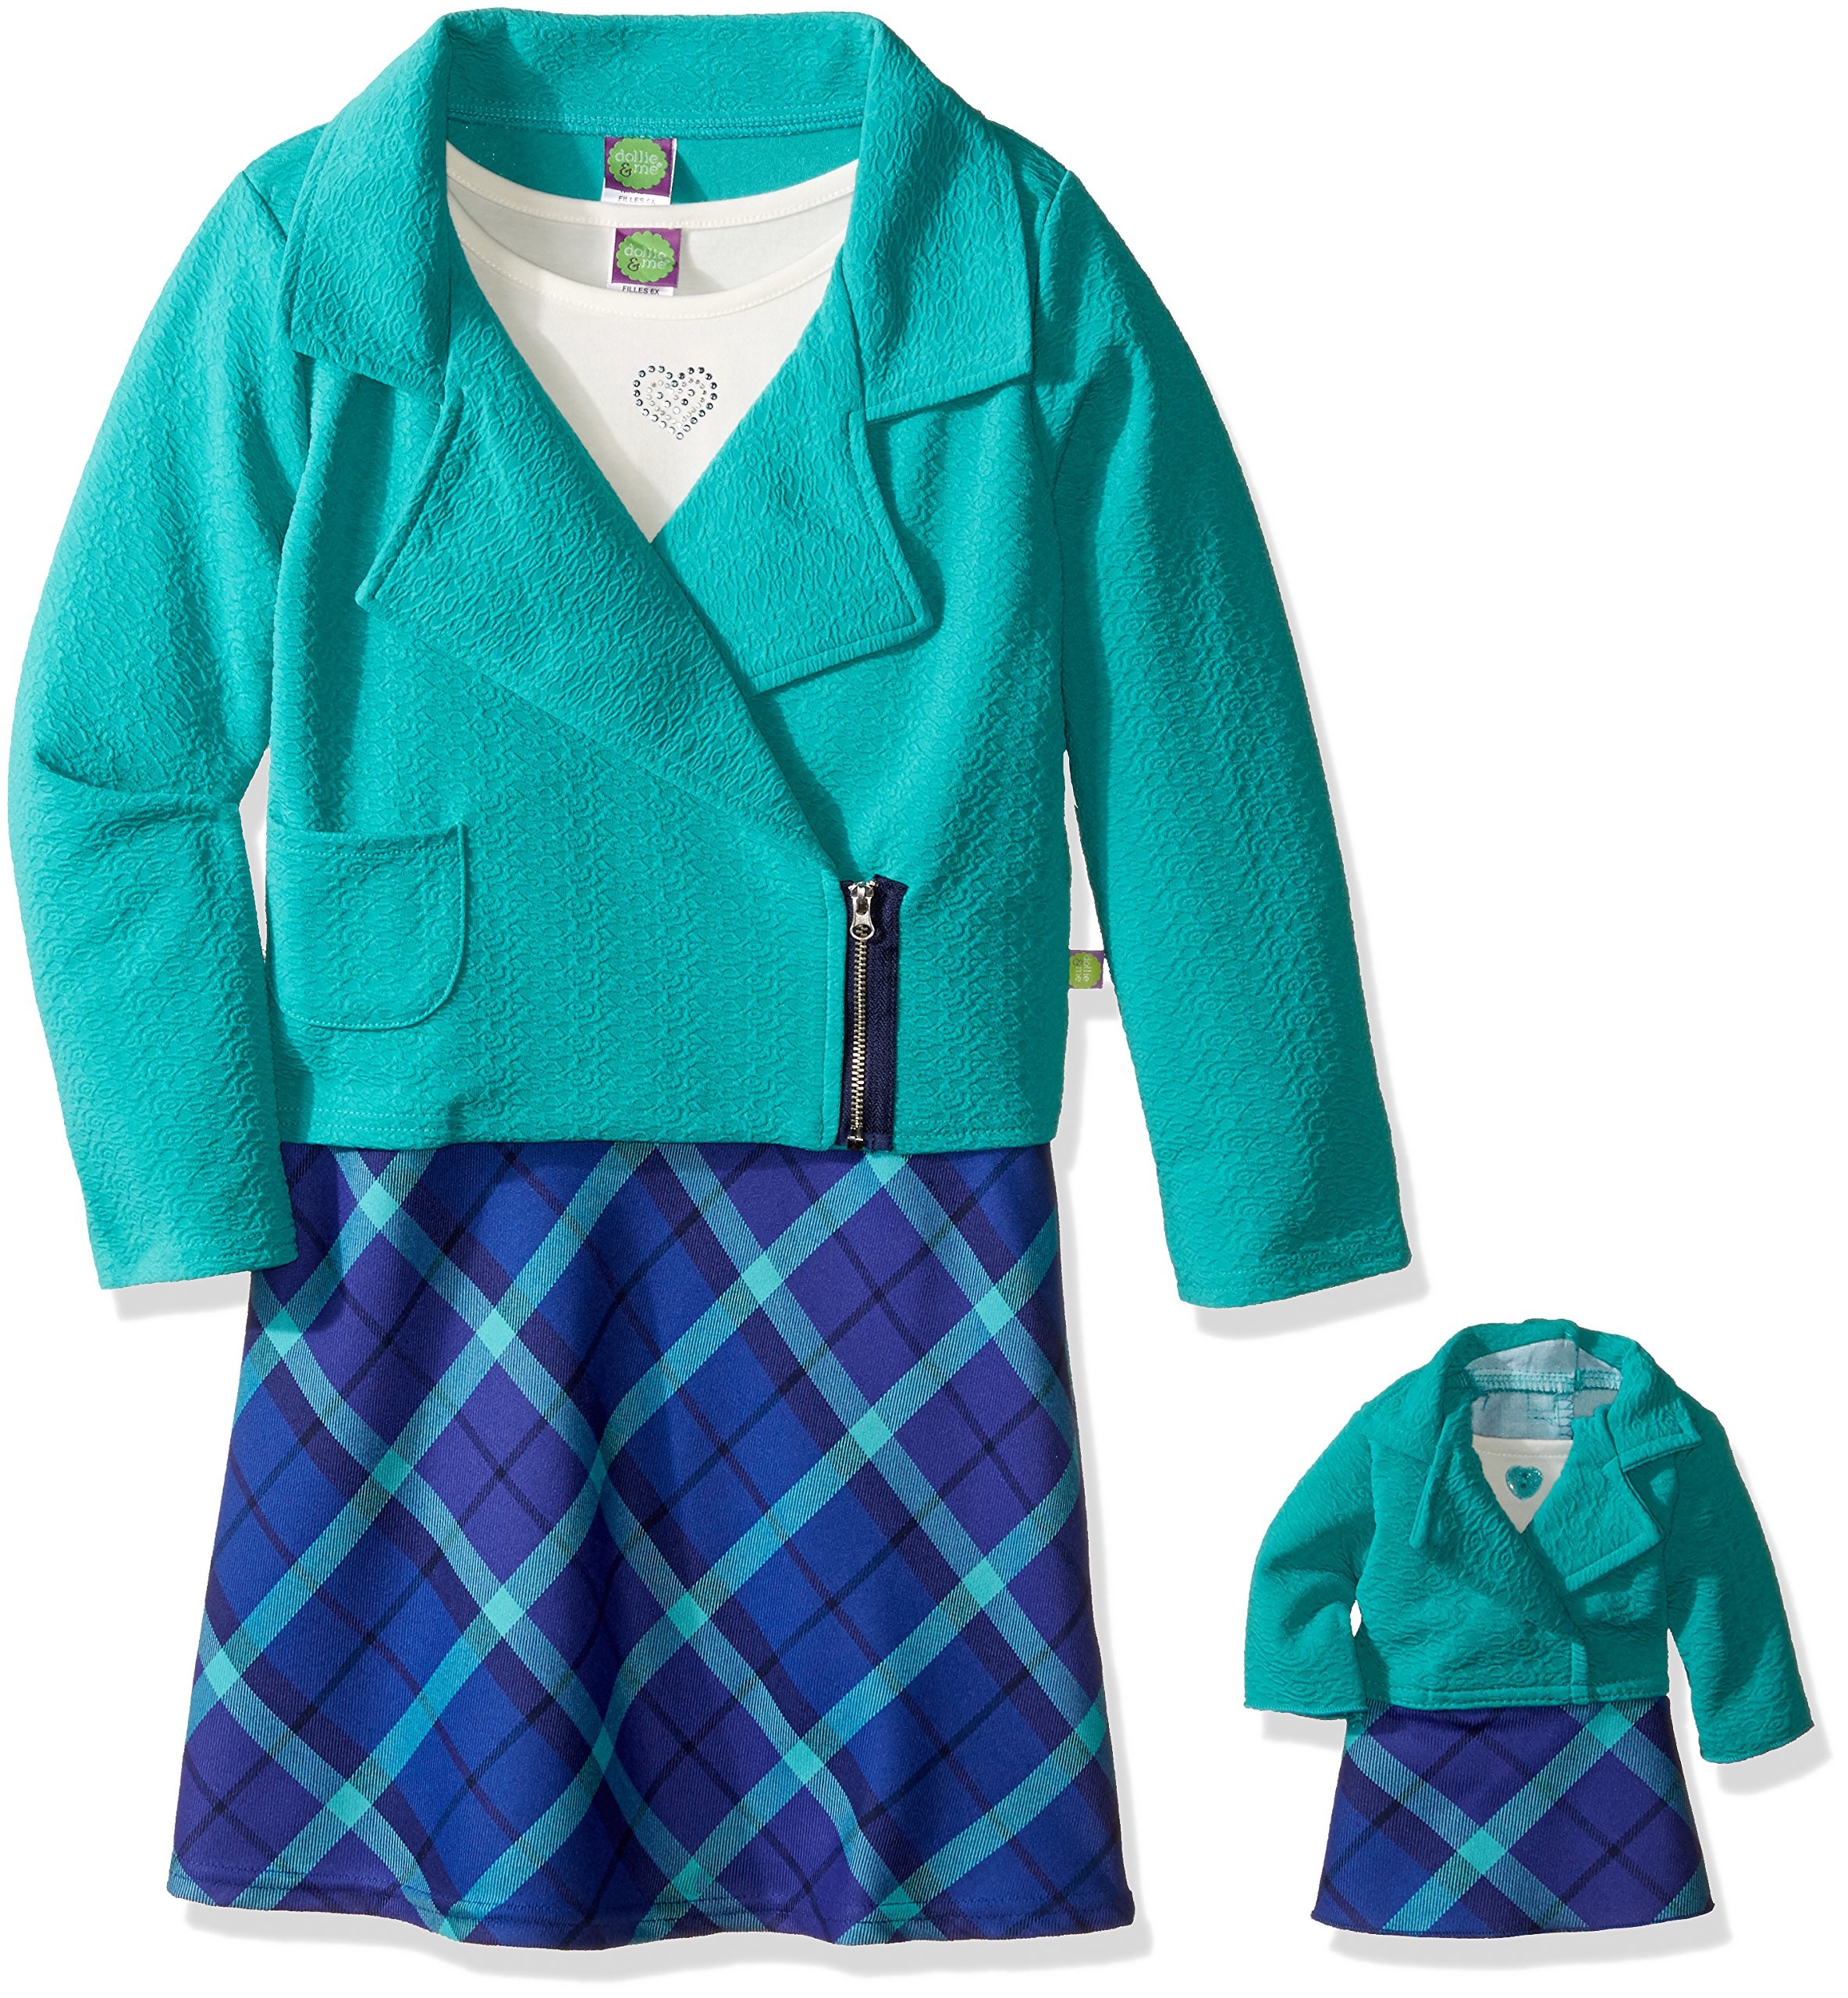 Dollie & Me Big Girls' Texture Moto Jacket with Knit to Plaid Dress, Teal/Multi, 12 by Dollie & Me